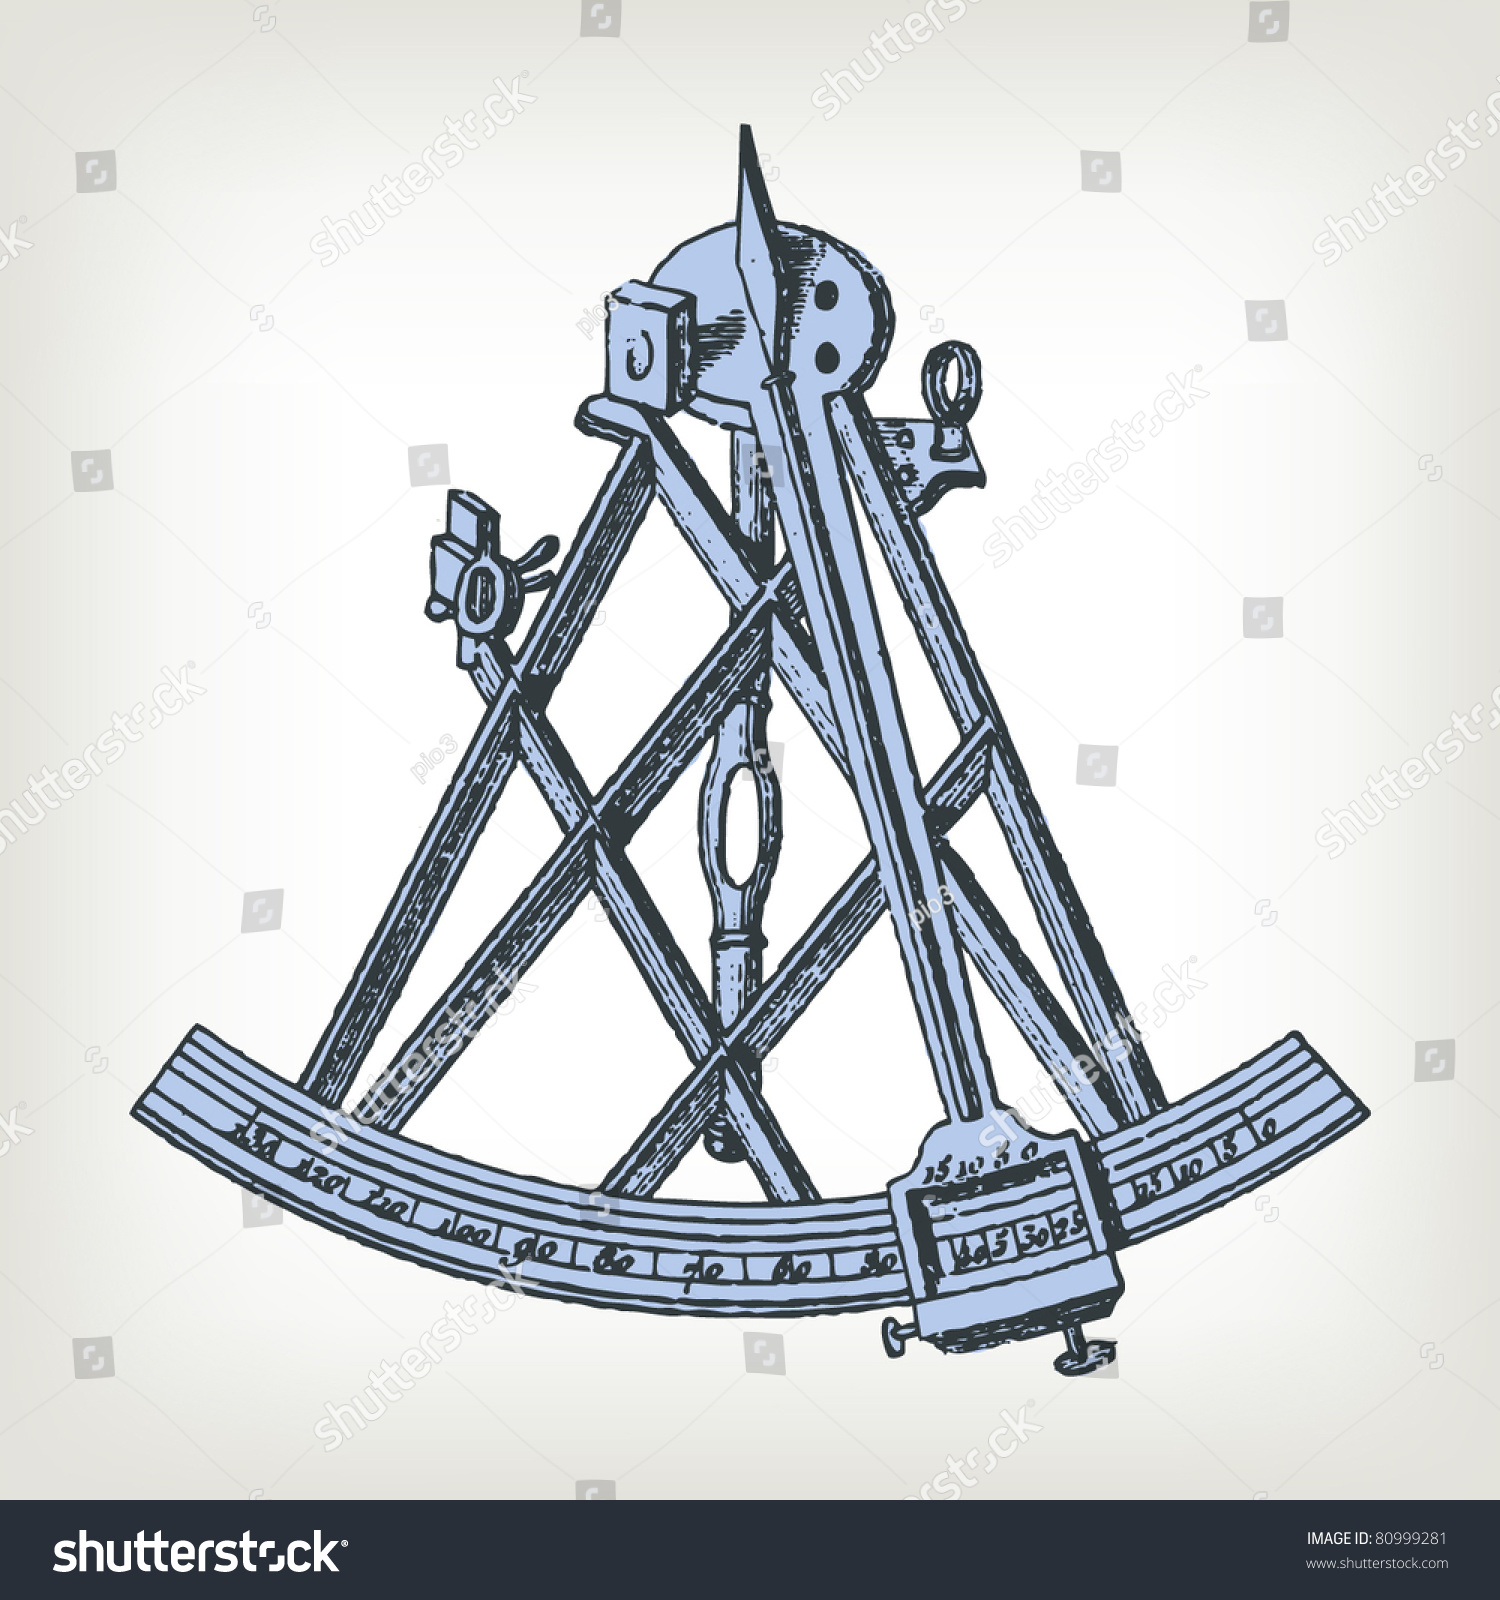 Engraving Vintage Sextant The Complete Encyclopedia Stock Vector ...